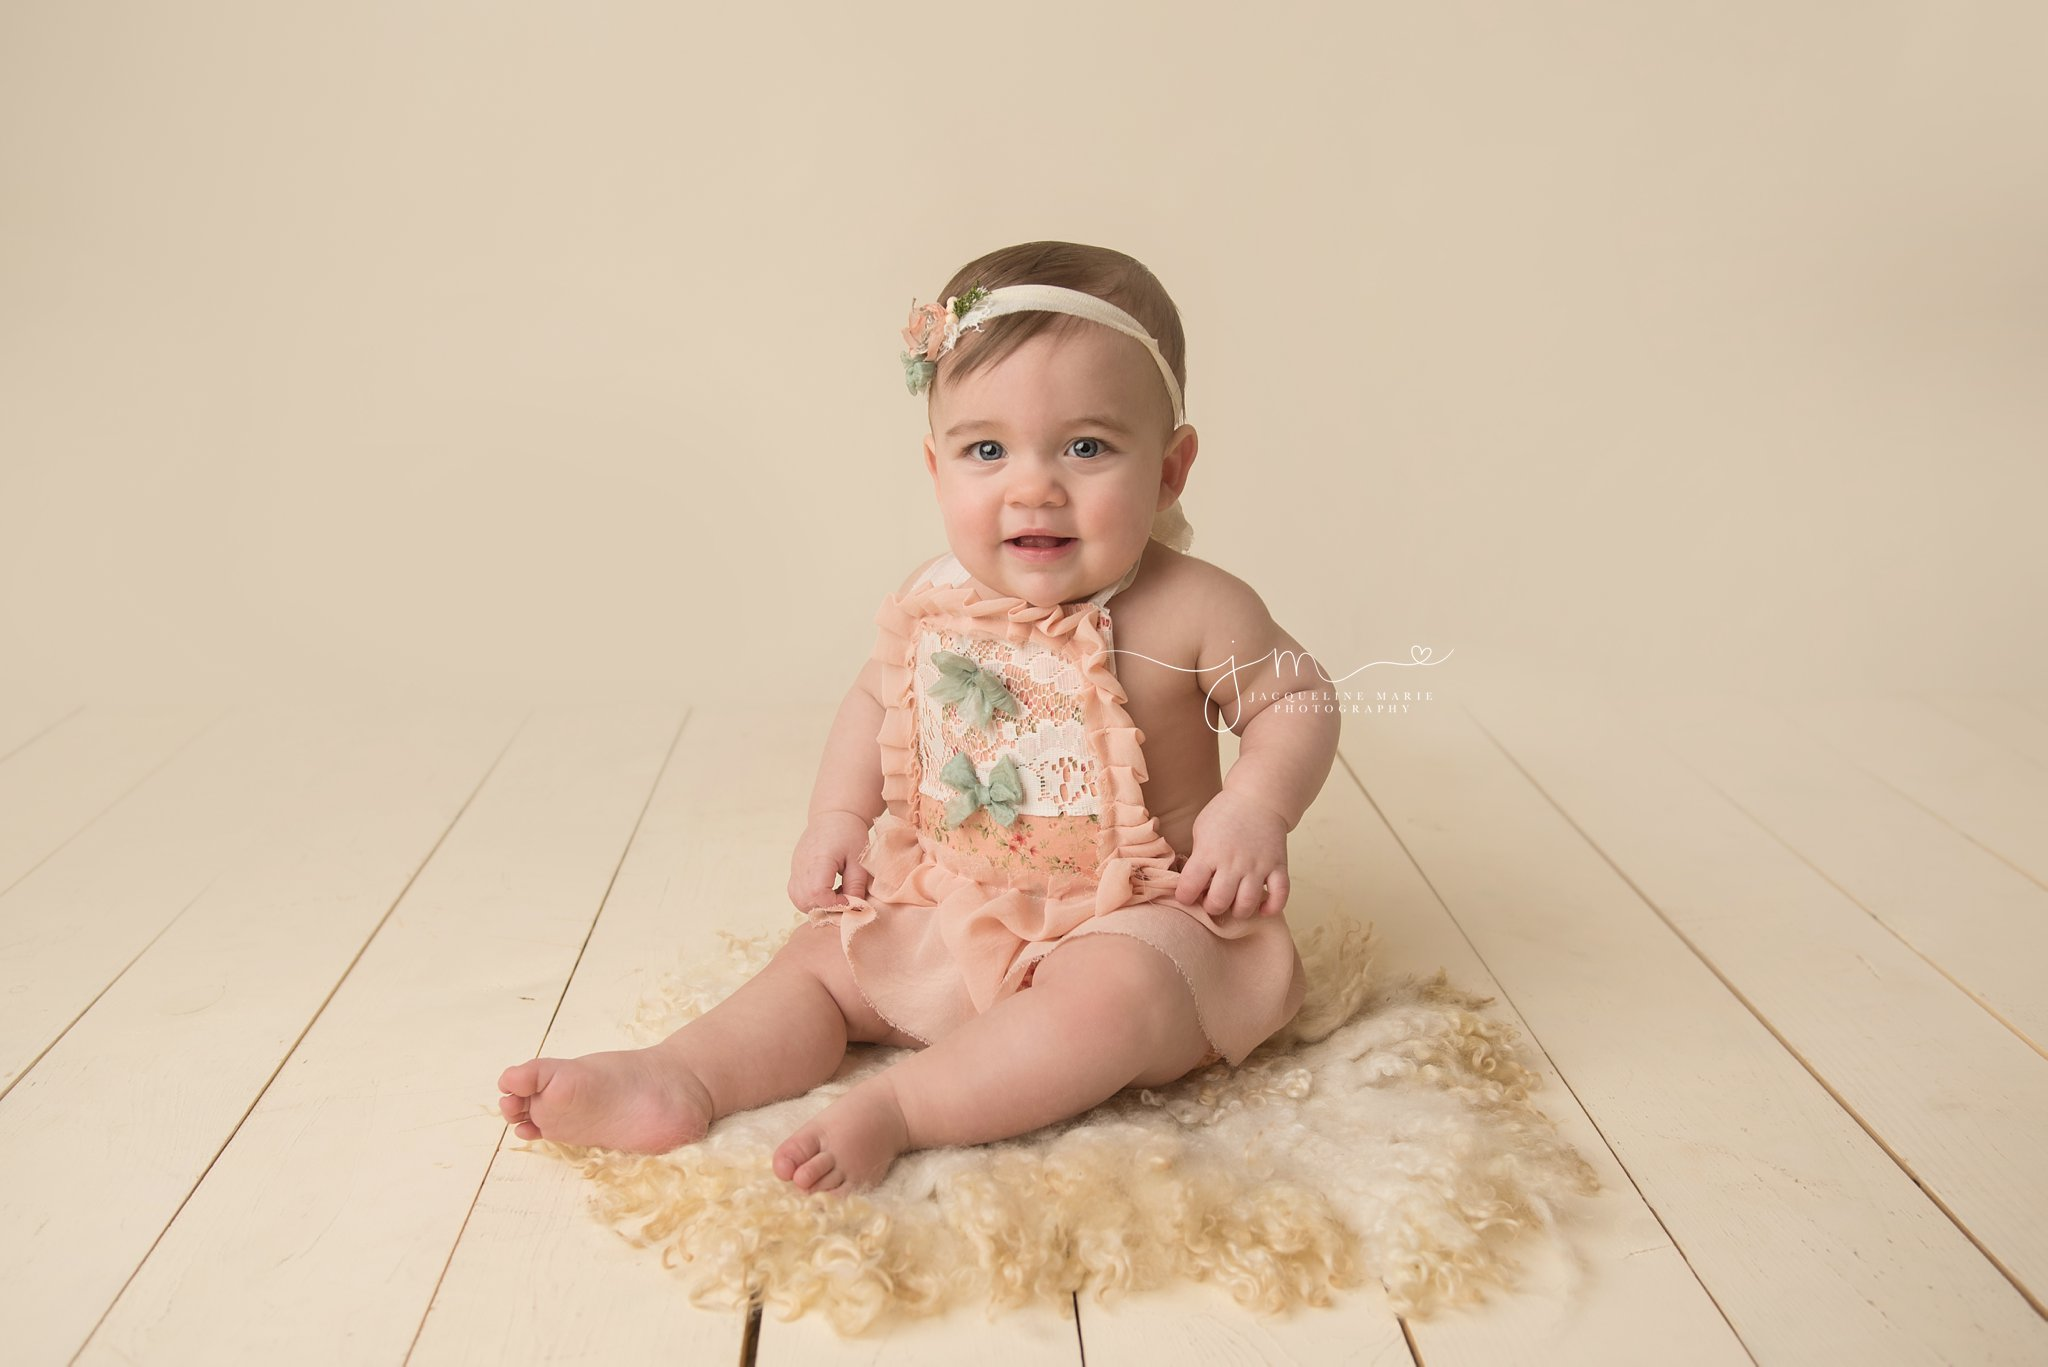 columbus ohio baby photographer poses 1 year old in peach romper and matching headband for first birthday milestone pictures